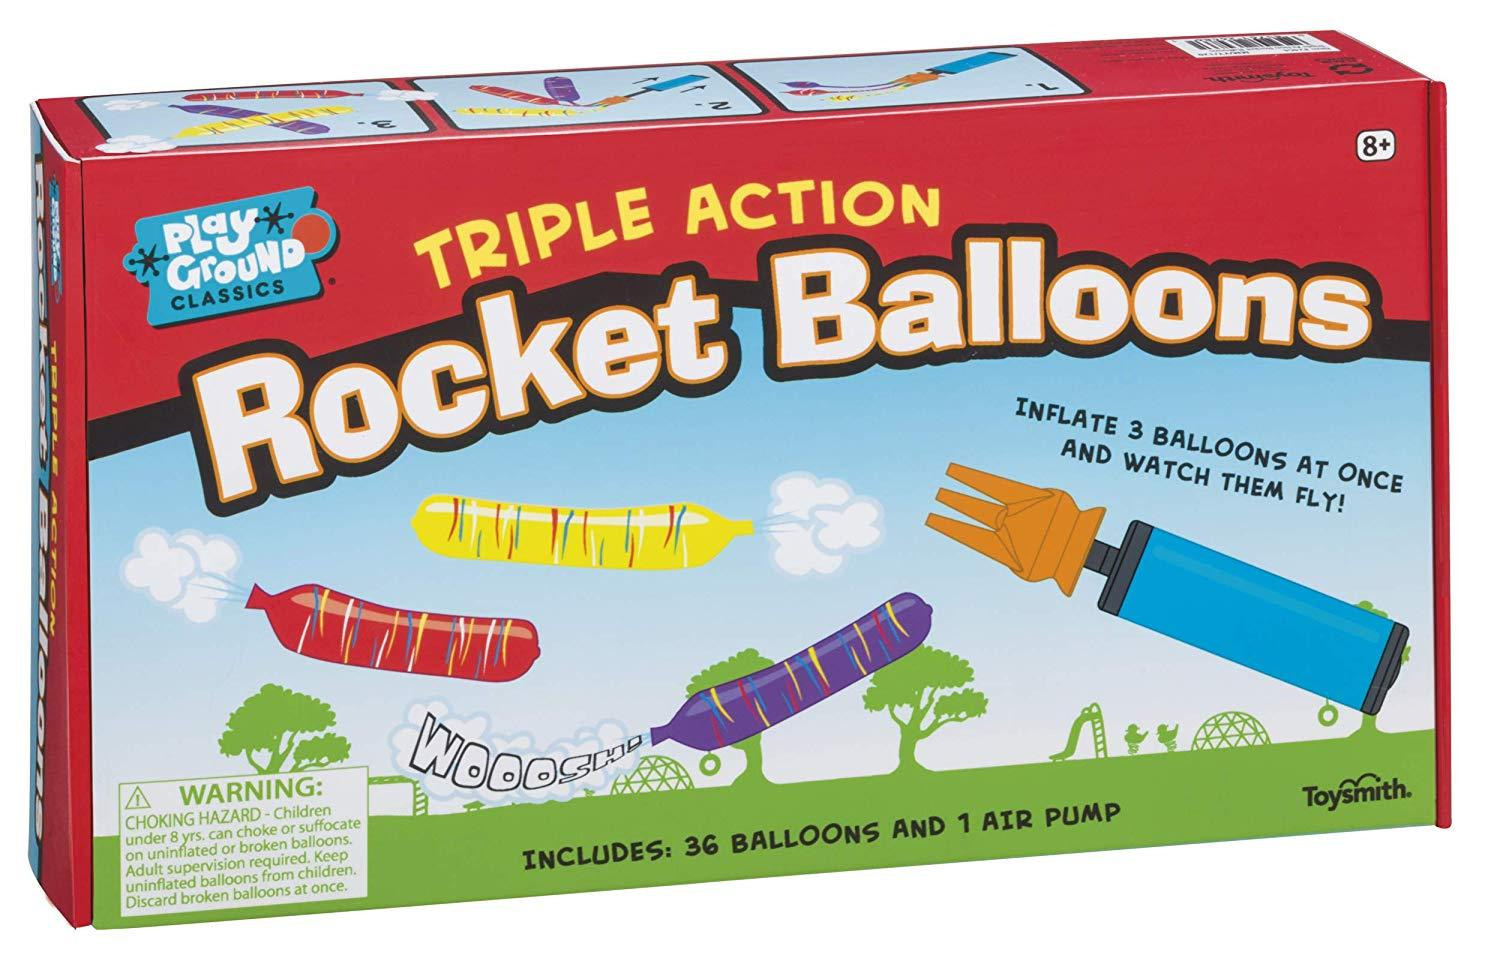 Triple Action Rocket Balloons - Three LiL Monkeys Three LiL Monkeys